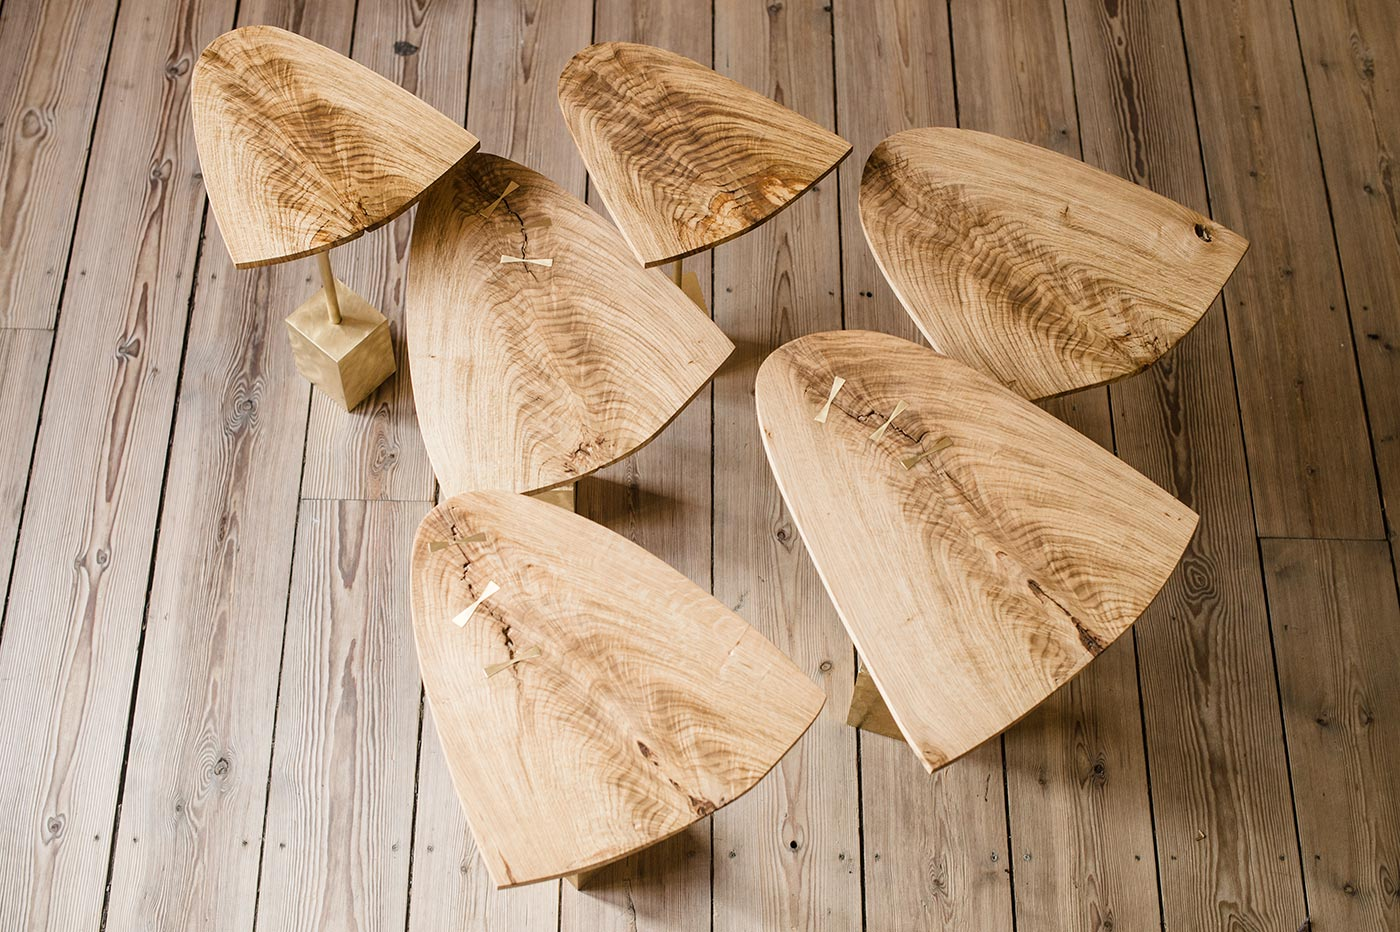 6 leaves/ side tables in 3 different heights